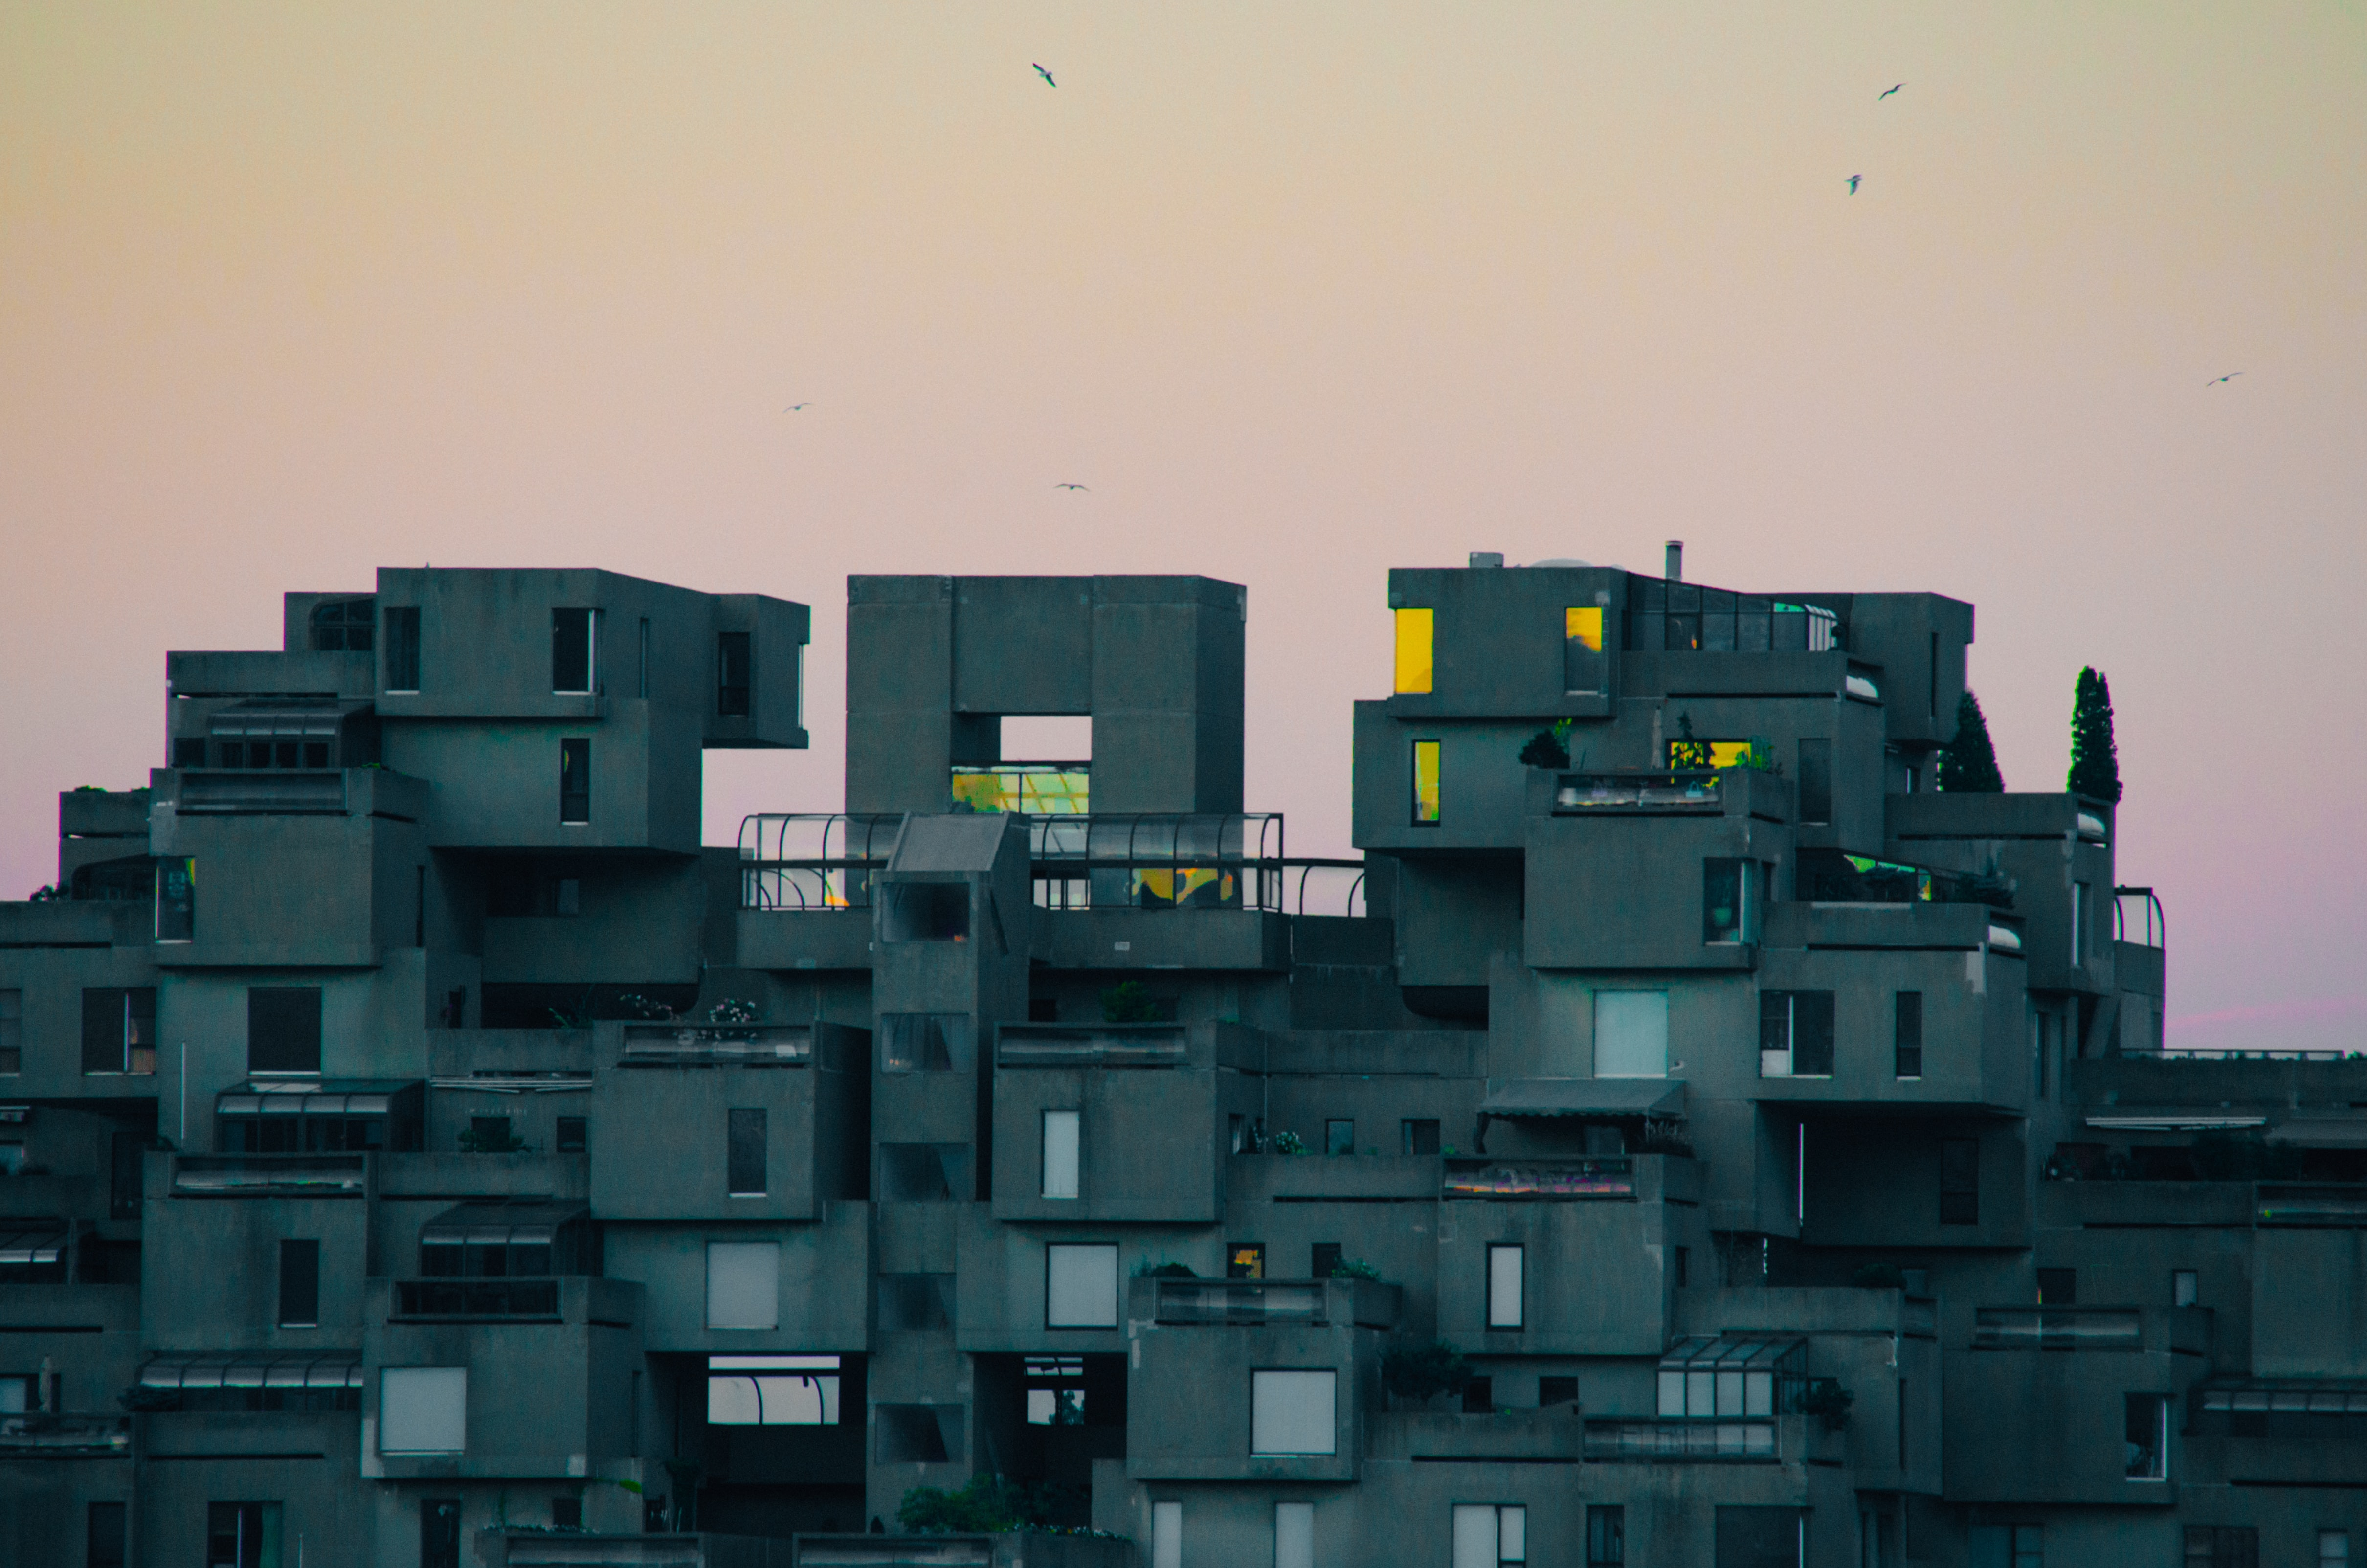 View of modern architecture building, Habitat 67, in Montreal with a pastel sunset in the background